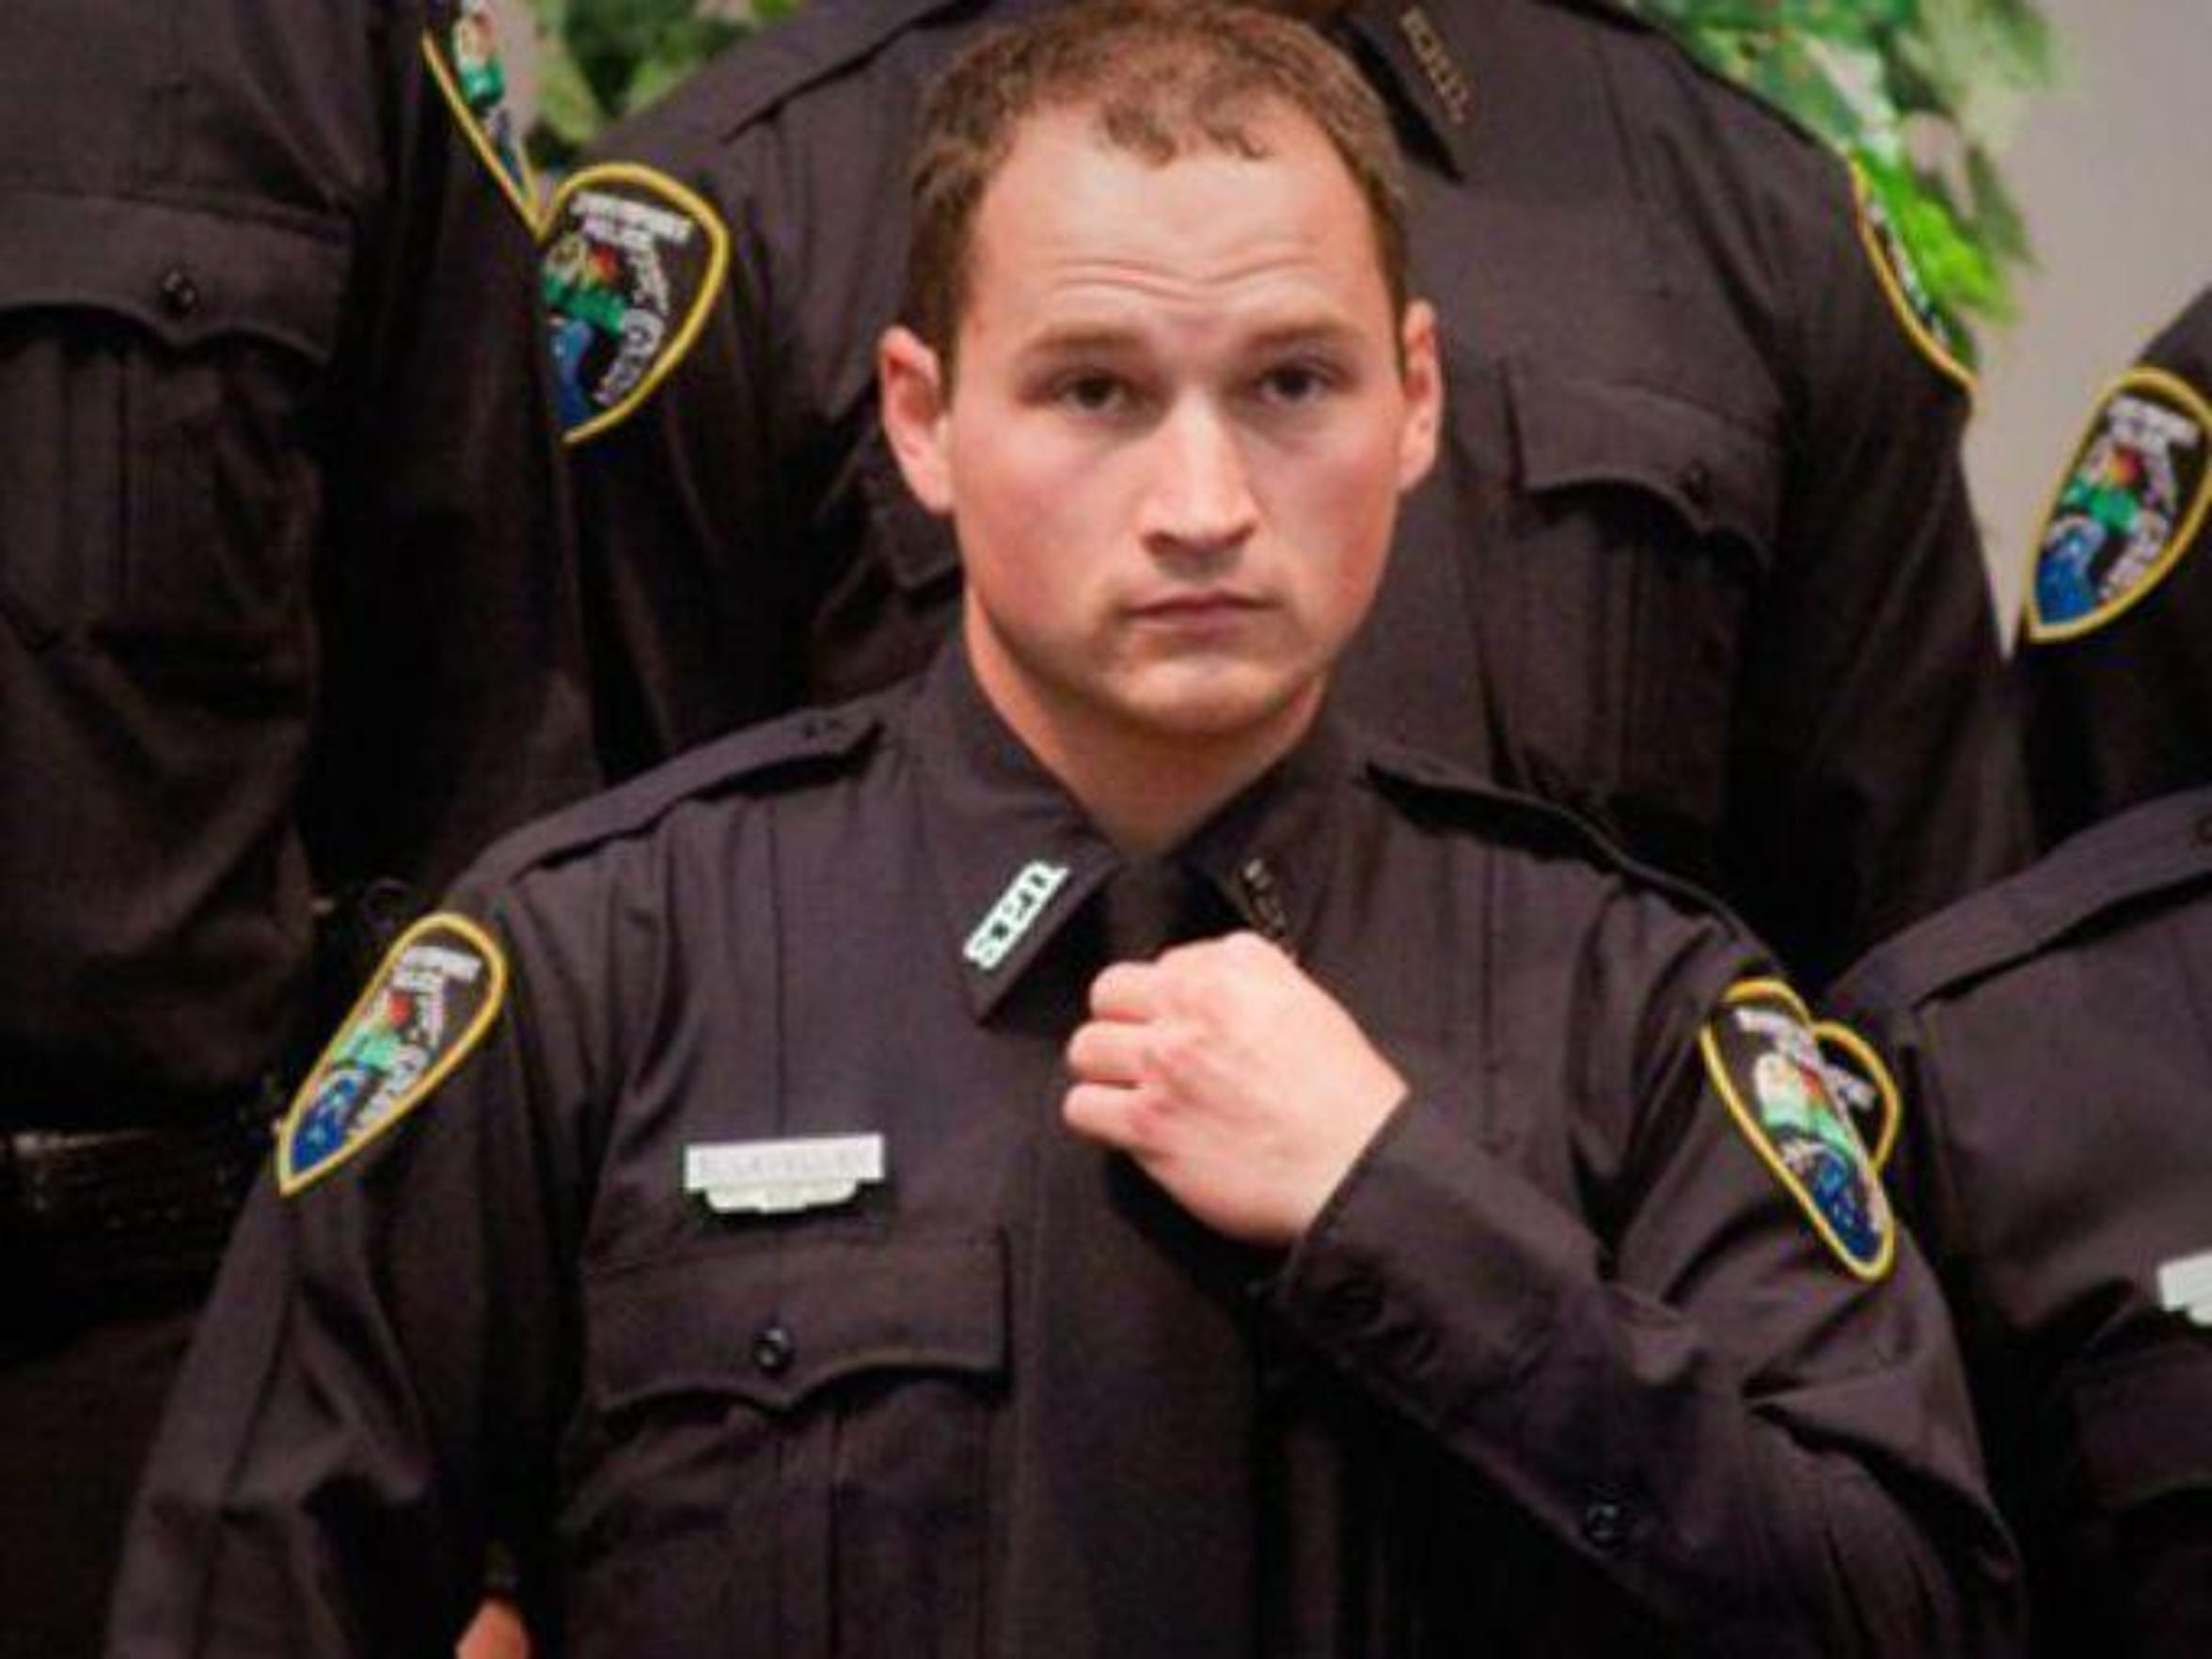 Shreveport police officer Thomas LaValley was killed in the line of duty, Aug. 5, 2015.